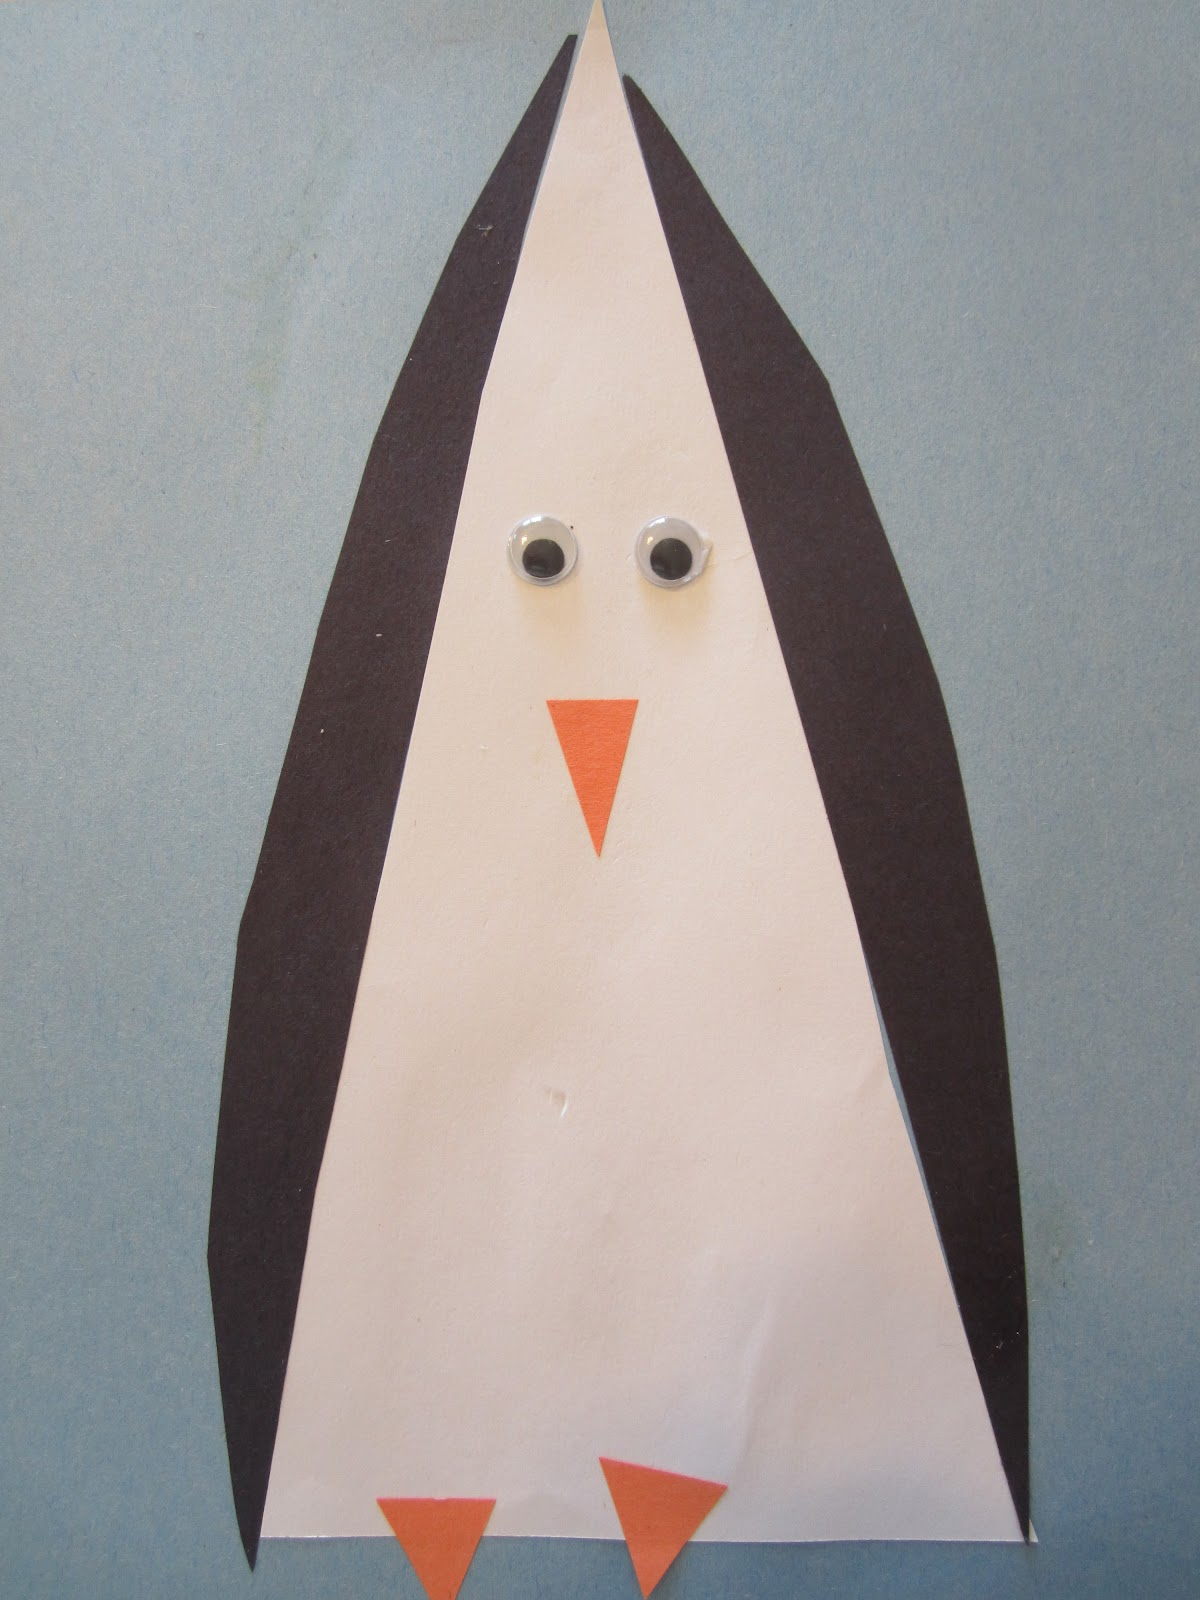 Preschool Penguins submited images.